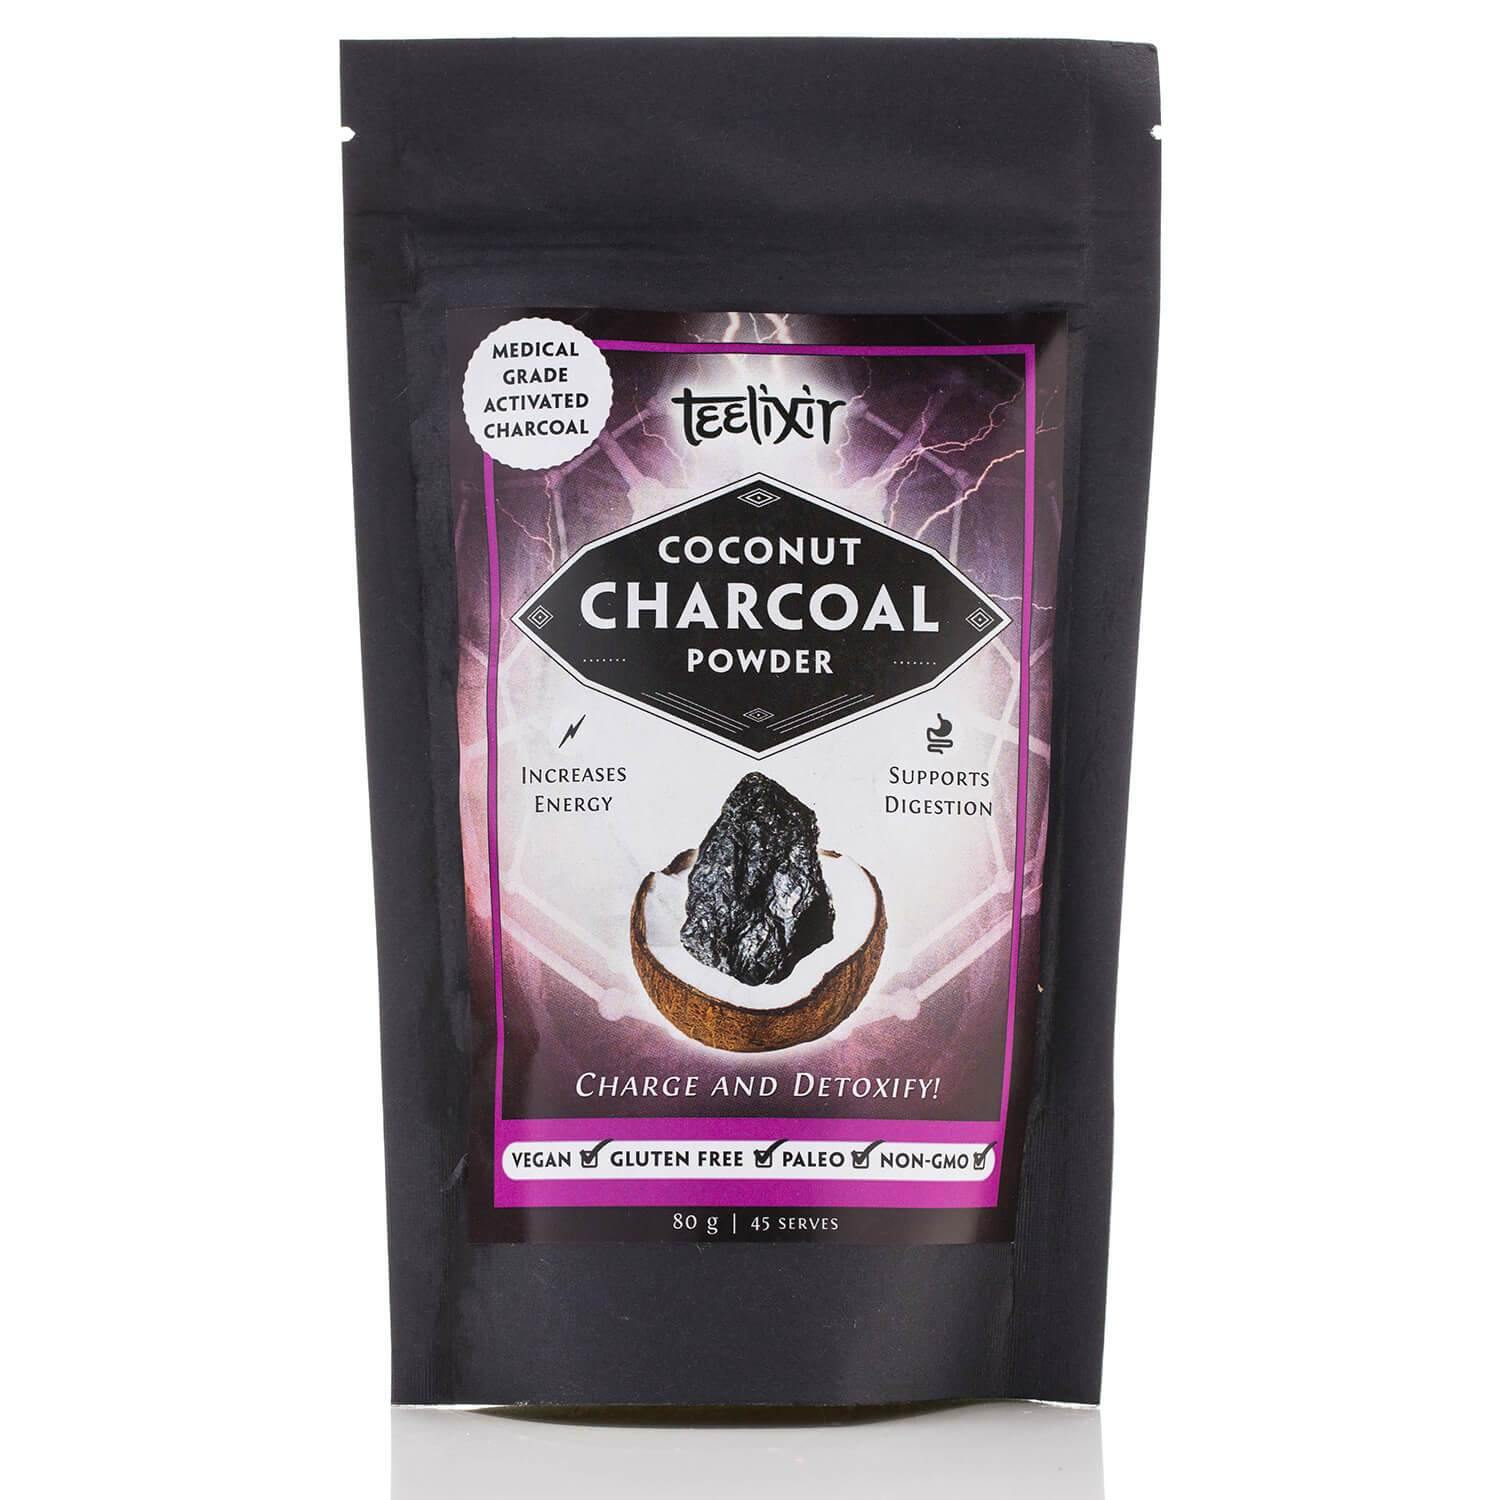 Teelixir Coconut Charcoal (Activated) Powder 80g - EZ Organic Shop